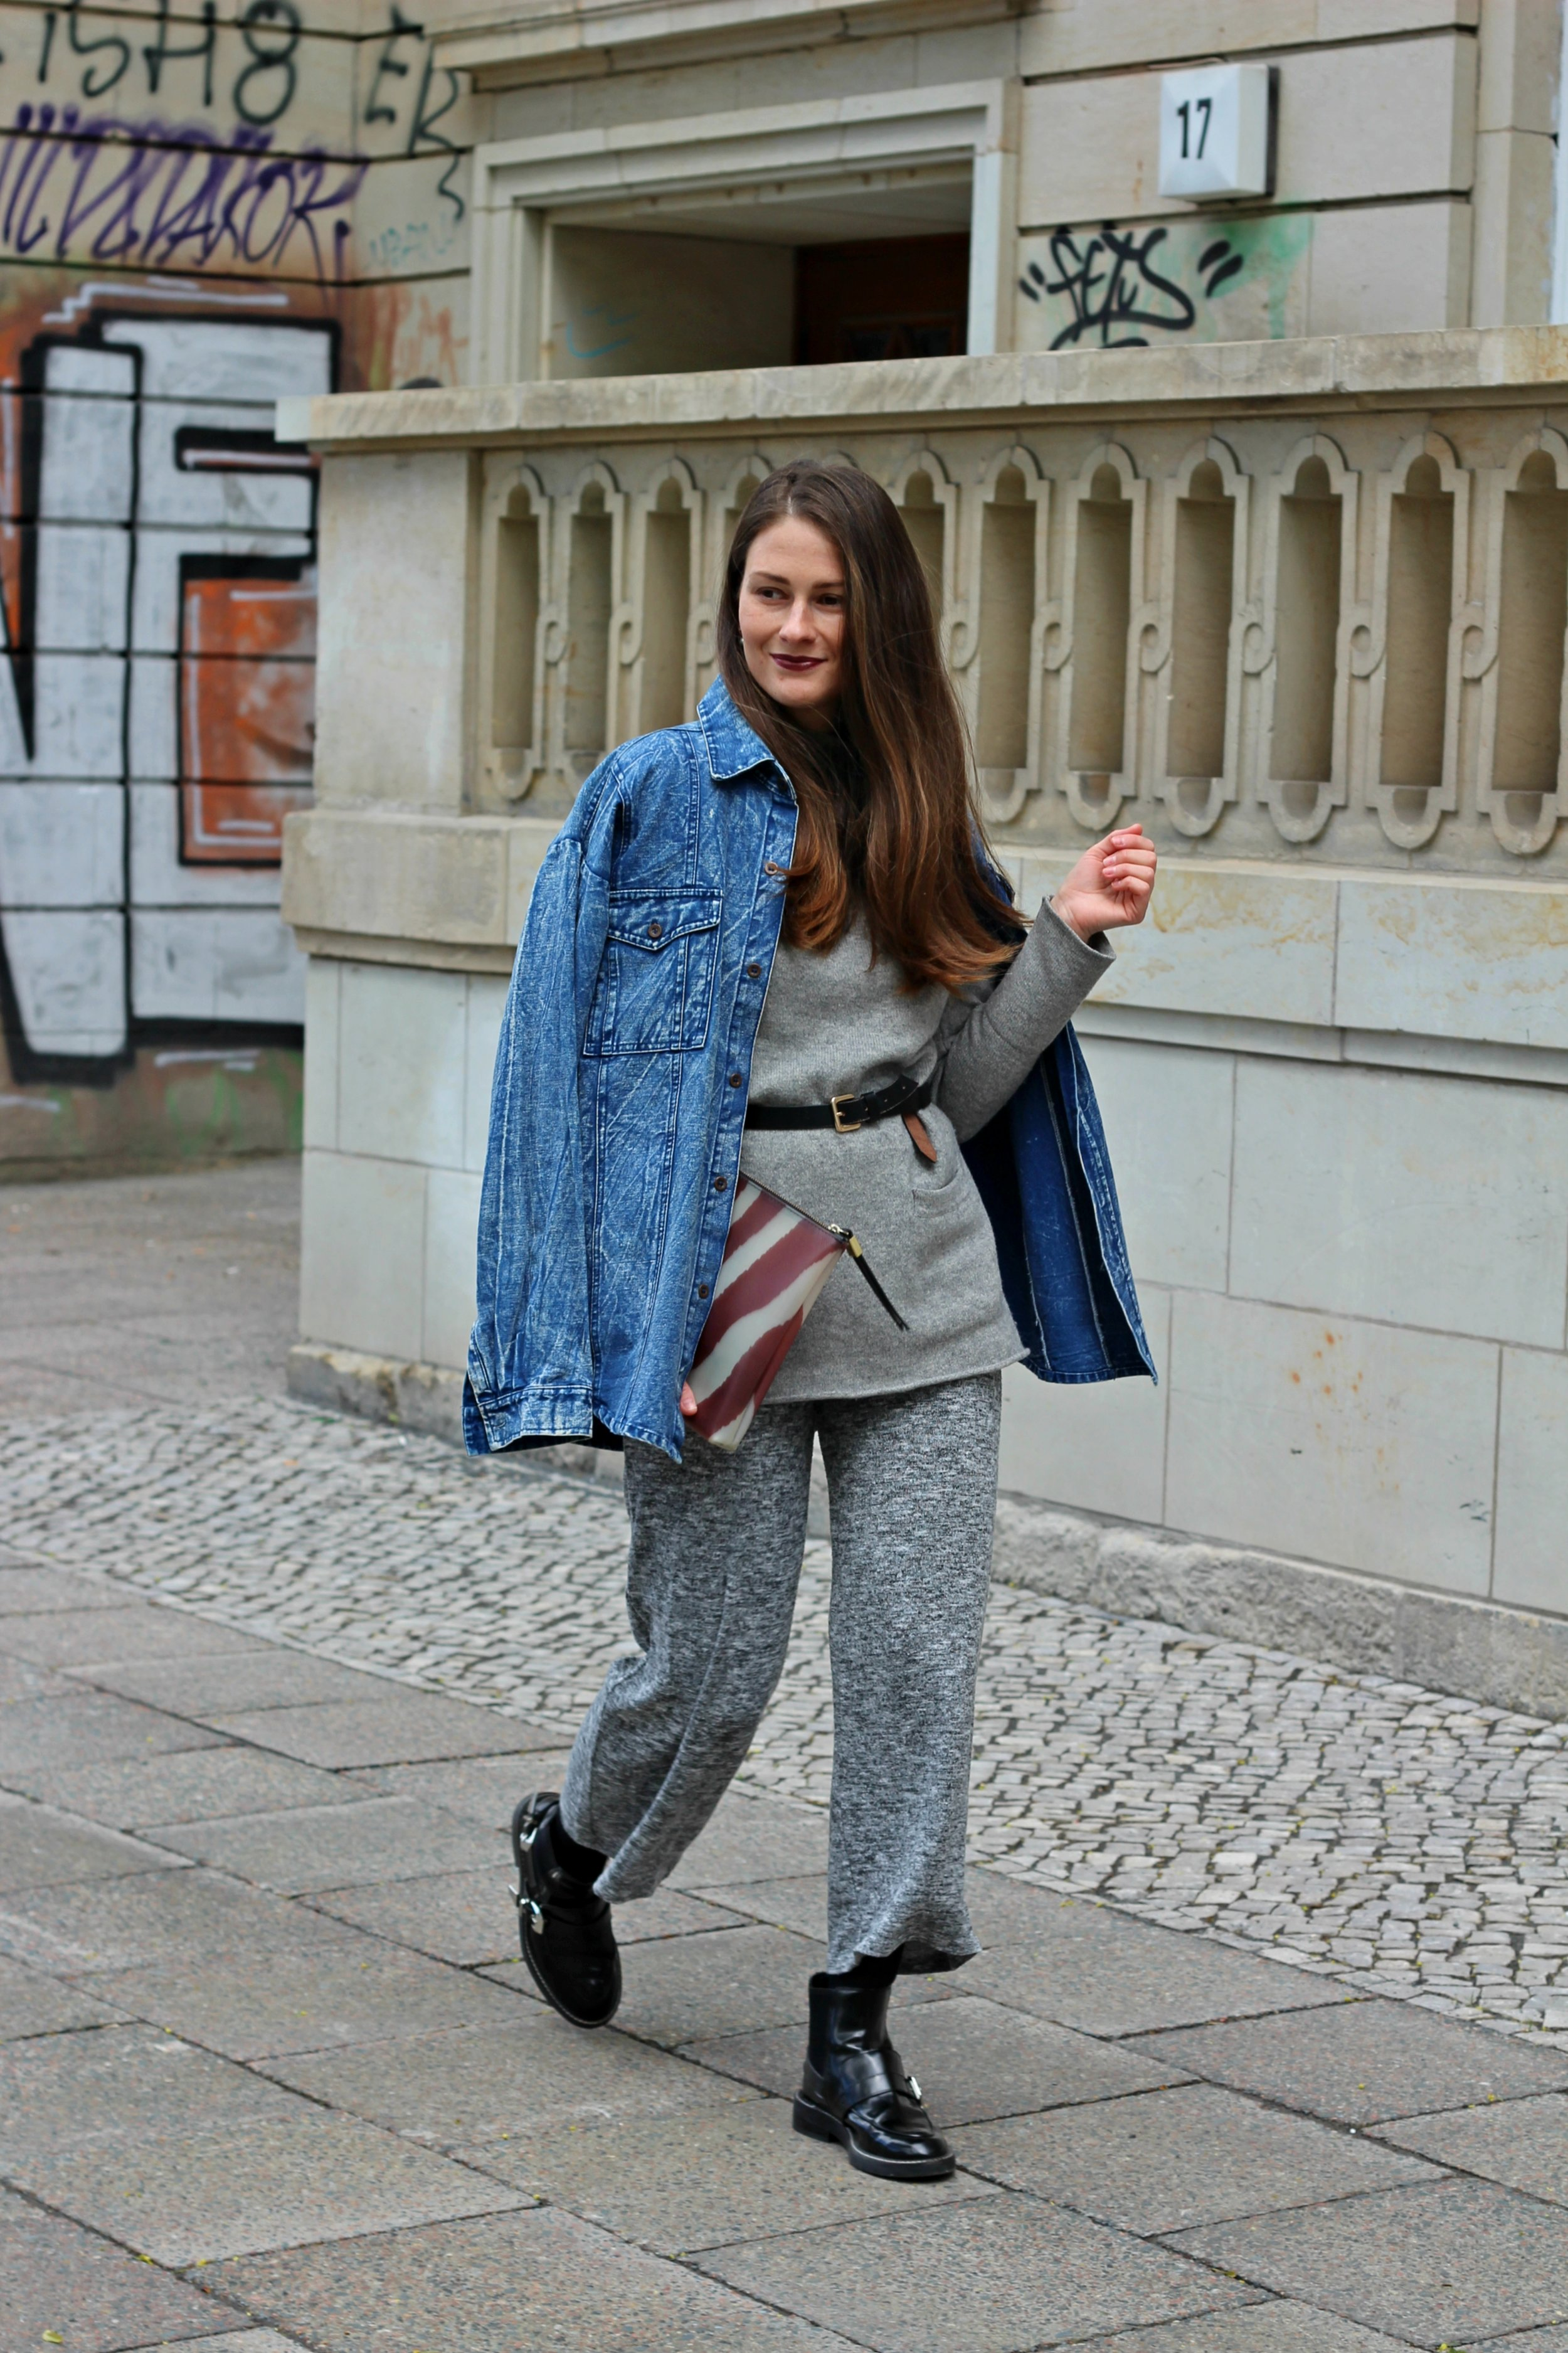 annaporter-denim-jacket-culottes-chelsea-boots-90's-outfit-style-fashion-blogger-2